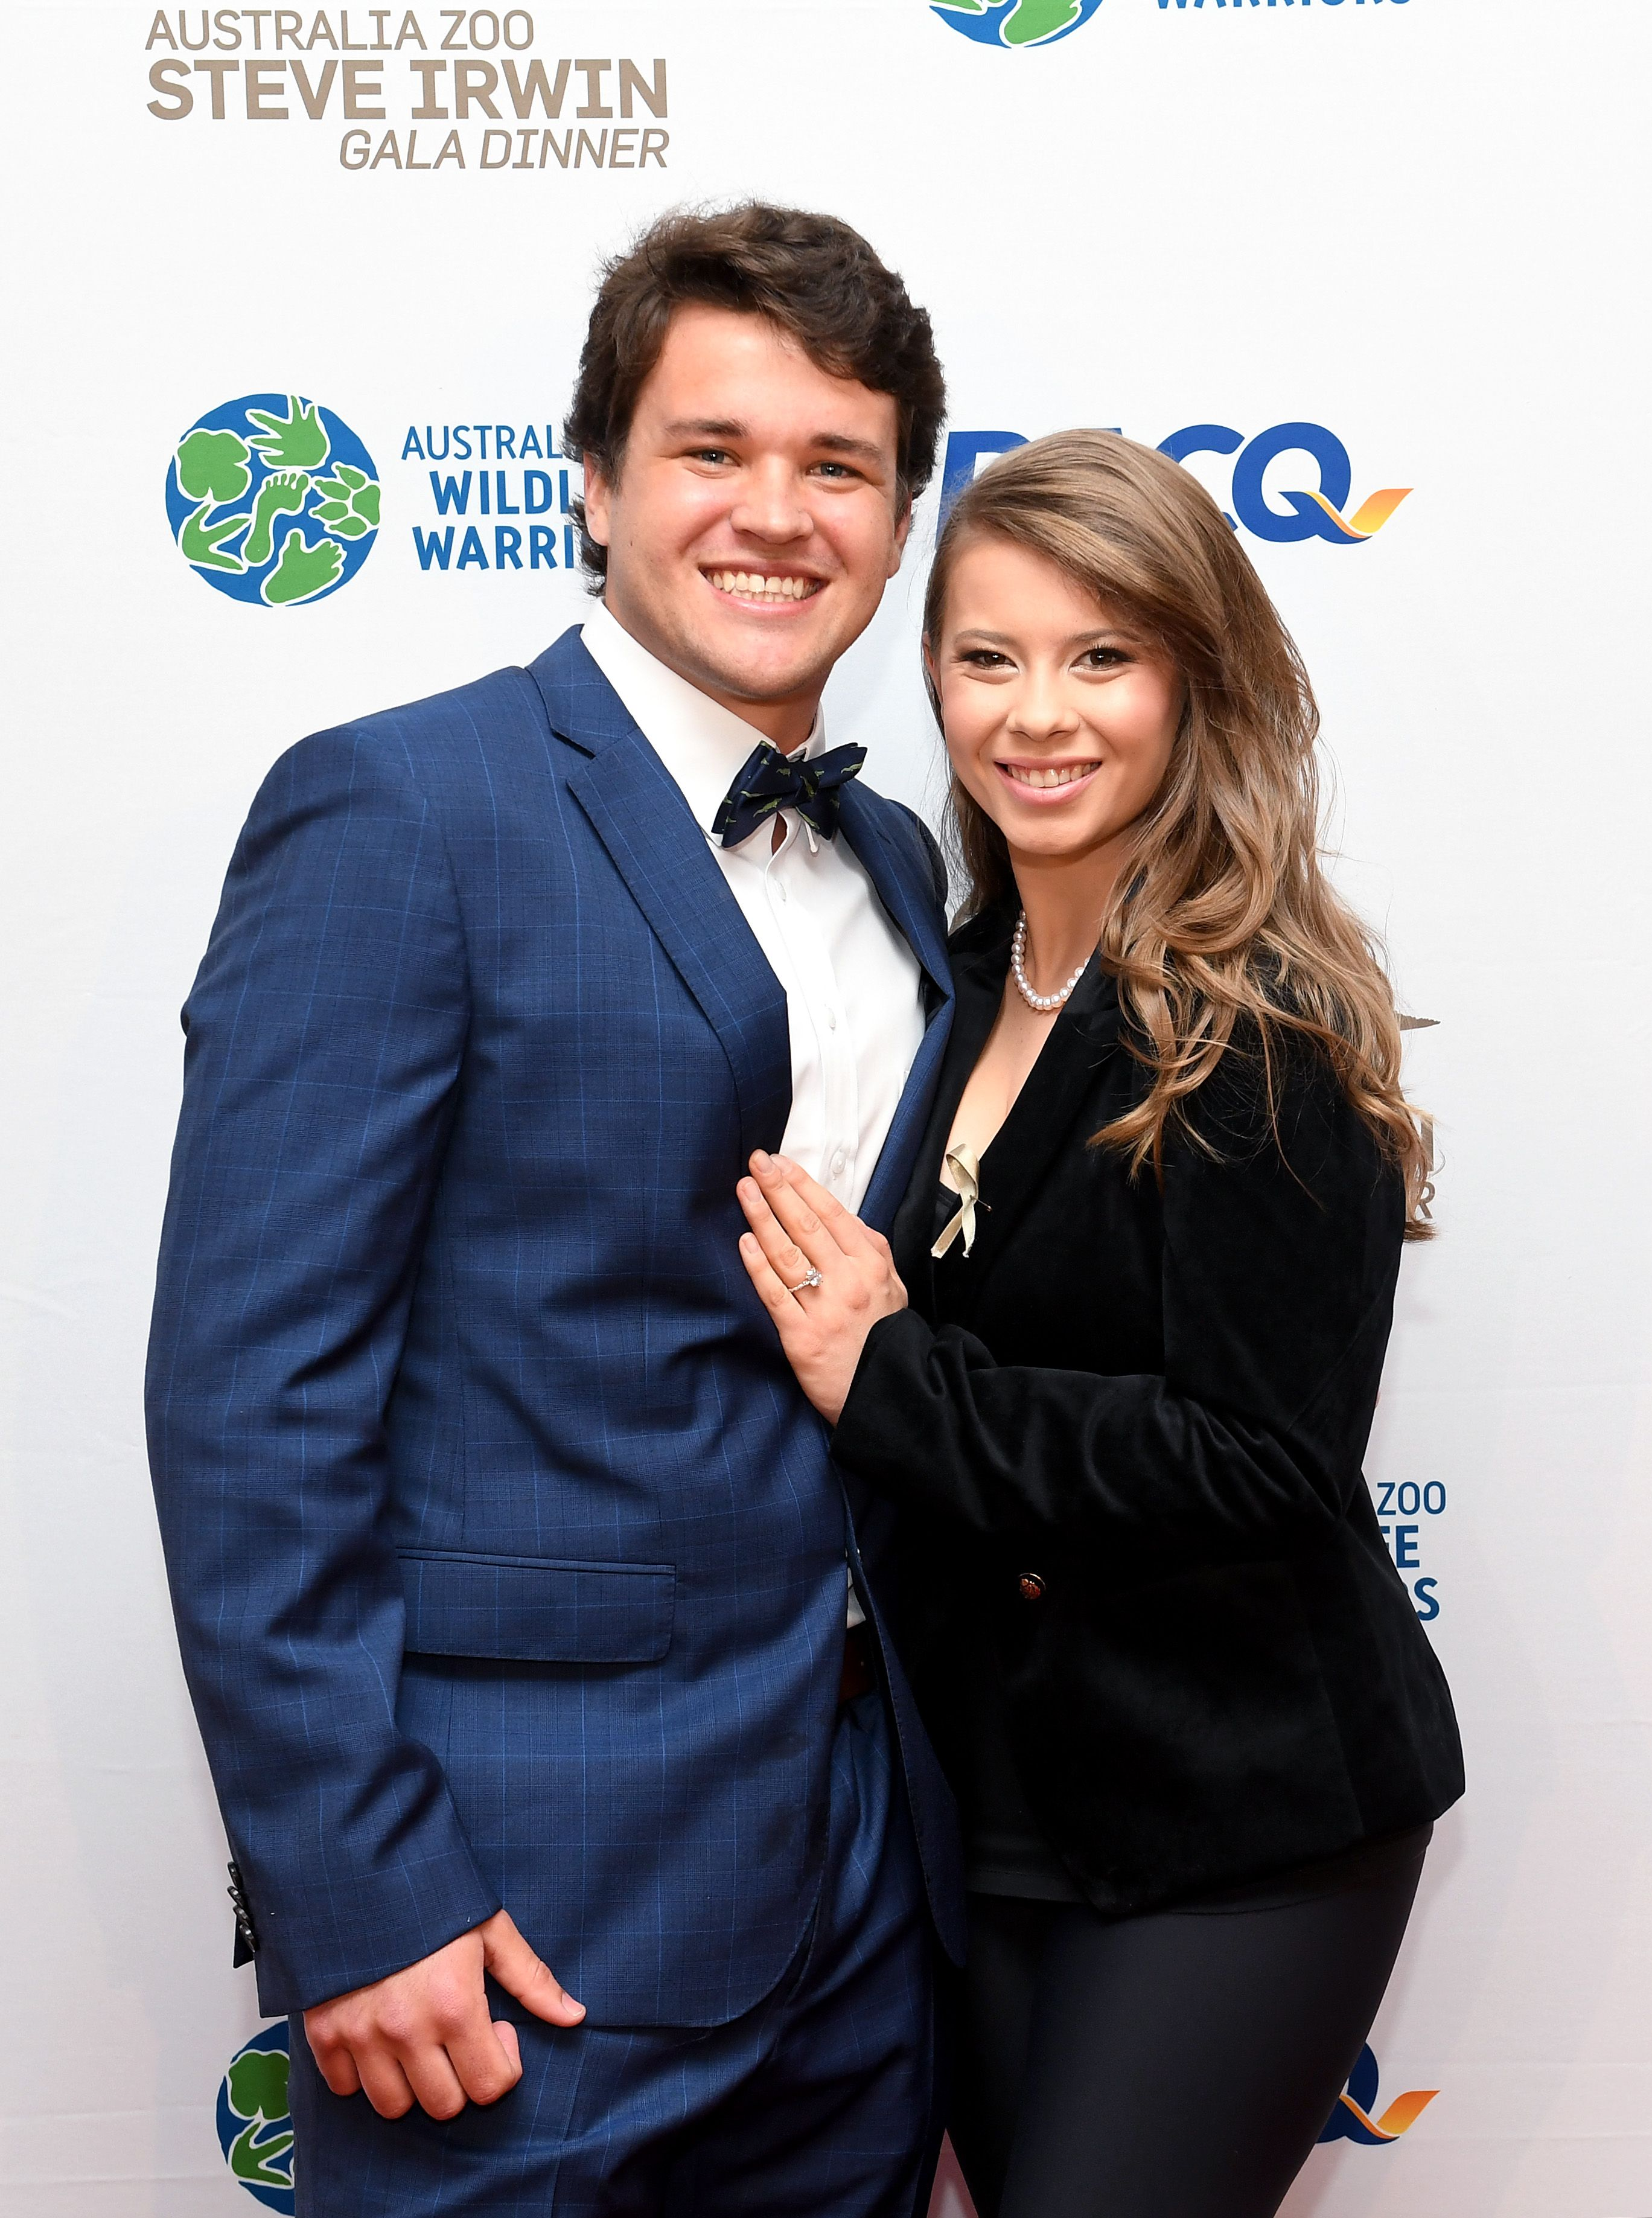 Bindi Irwin and Chandler Powell at the Steve Irwin Gala Dinner in Brisbane Australia on November 9, 2019 | Getty Images